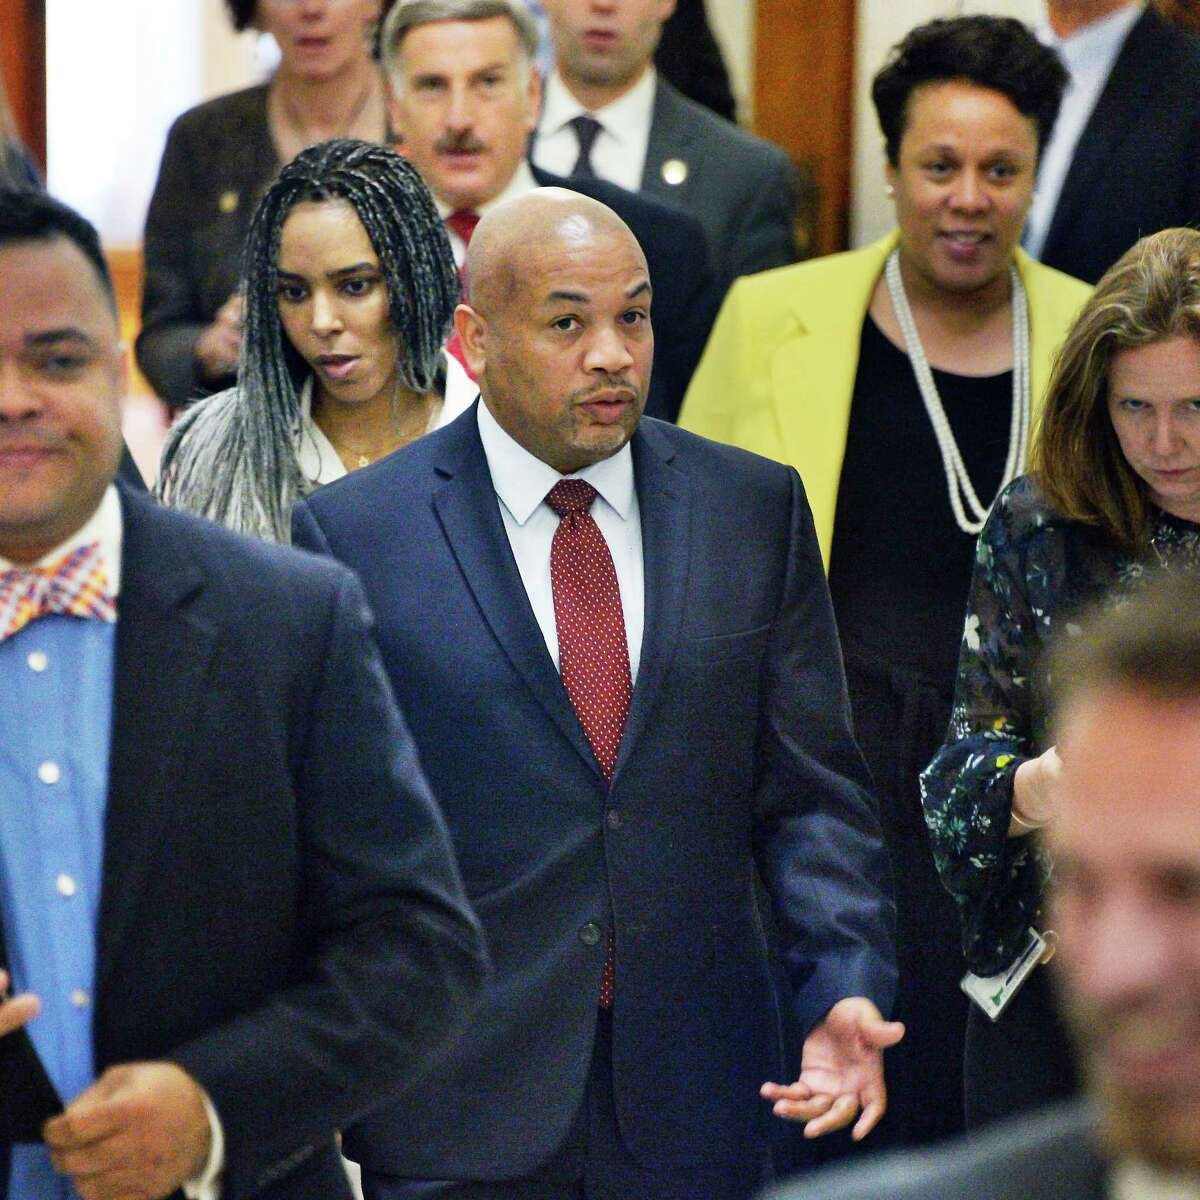 Assembly Speaker Carl Heastie, center, following a conference by Assembly Democrats about an Attorney General appointment at the Capitol Tuesday May 8, 2018 in Albany, NY. (John Carl D'Annibale/Times Union)